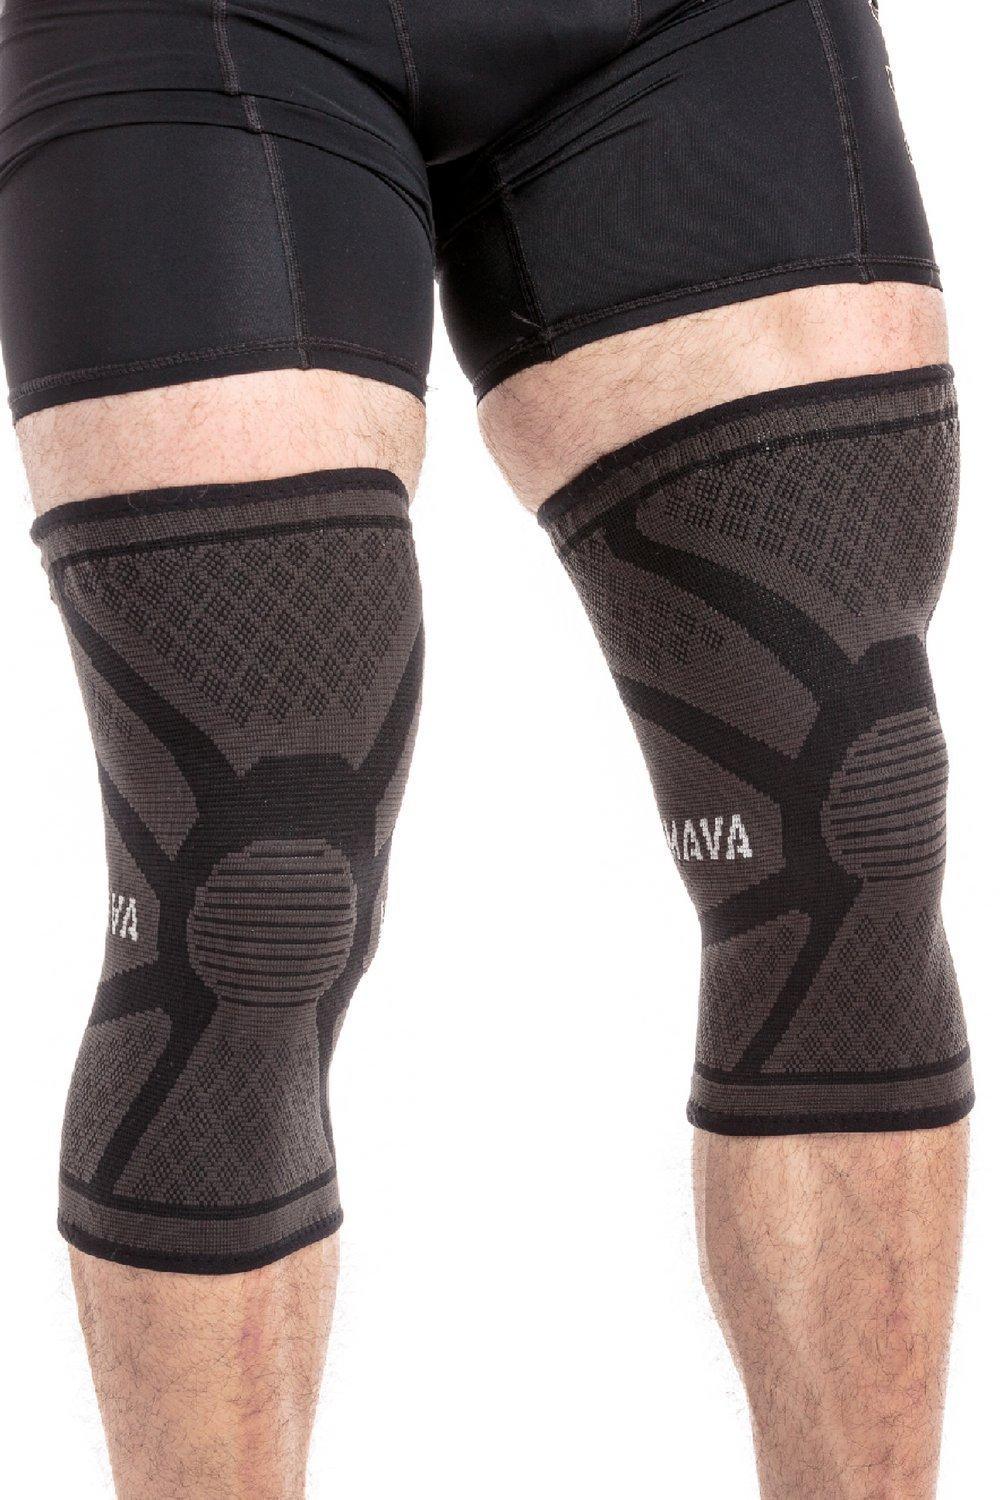 Mava_Sports_Knee_Compression_Sleeve_Support